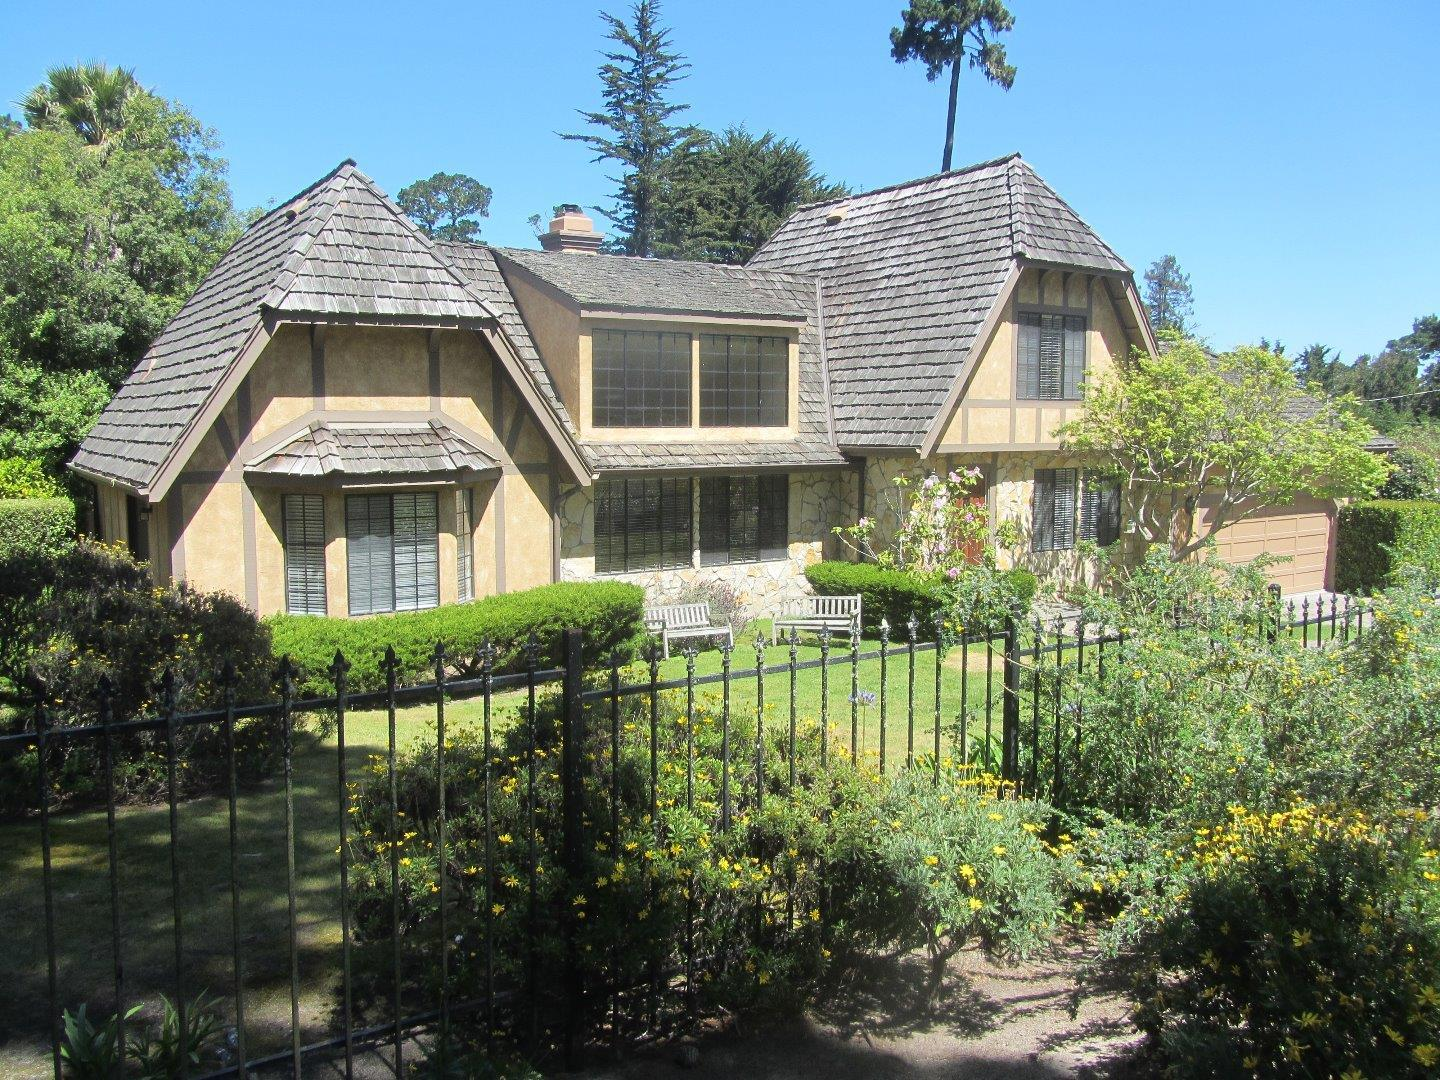 Local Real Estate: Homes for Sale — Pebble Beach, CA — Coldwell Banker